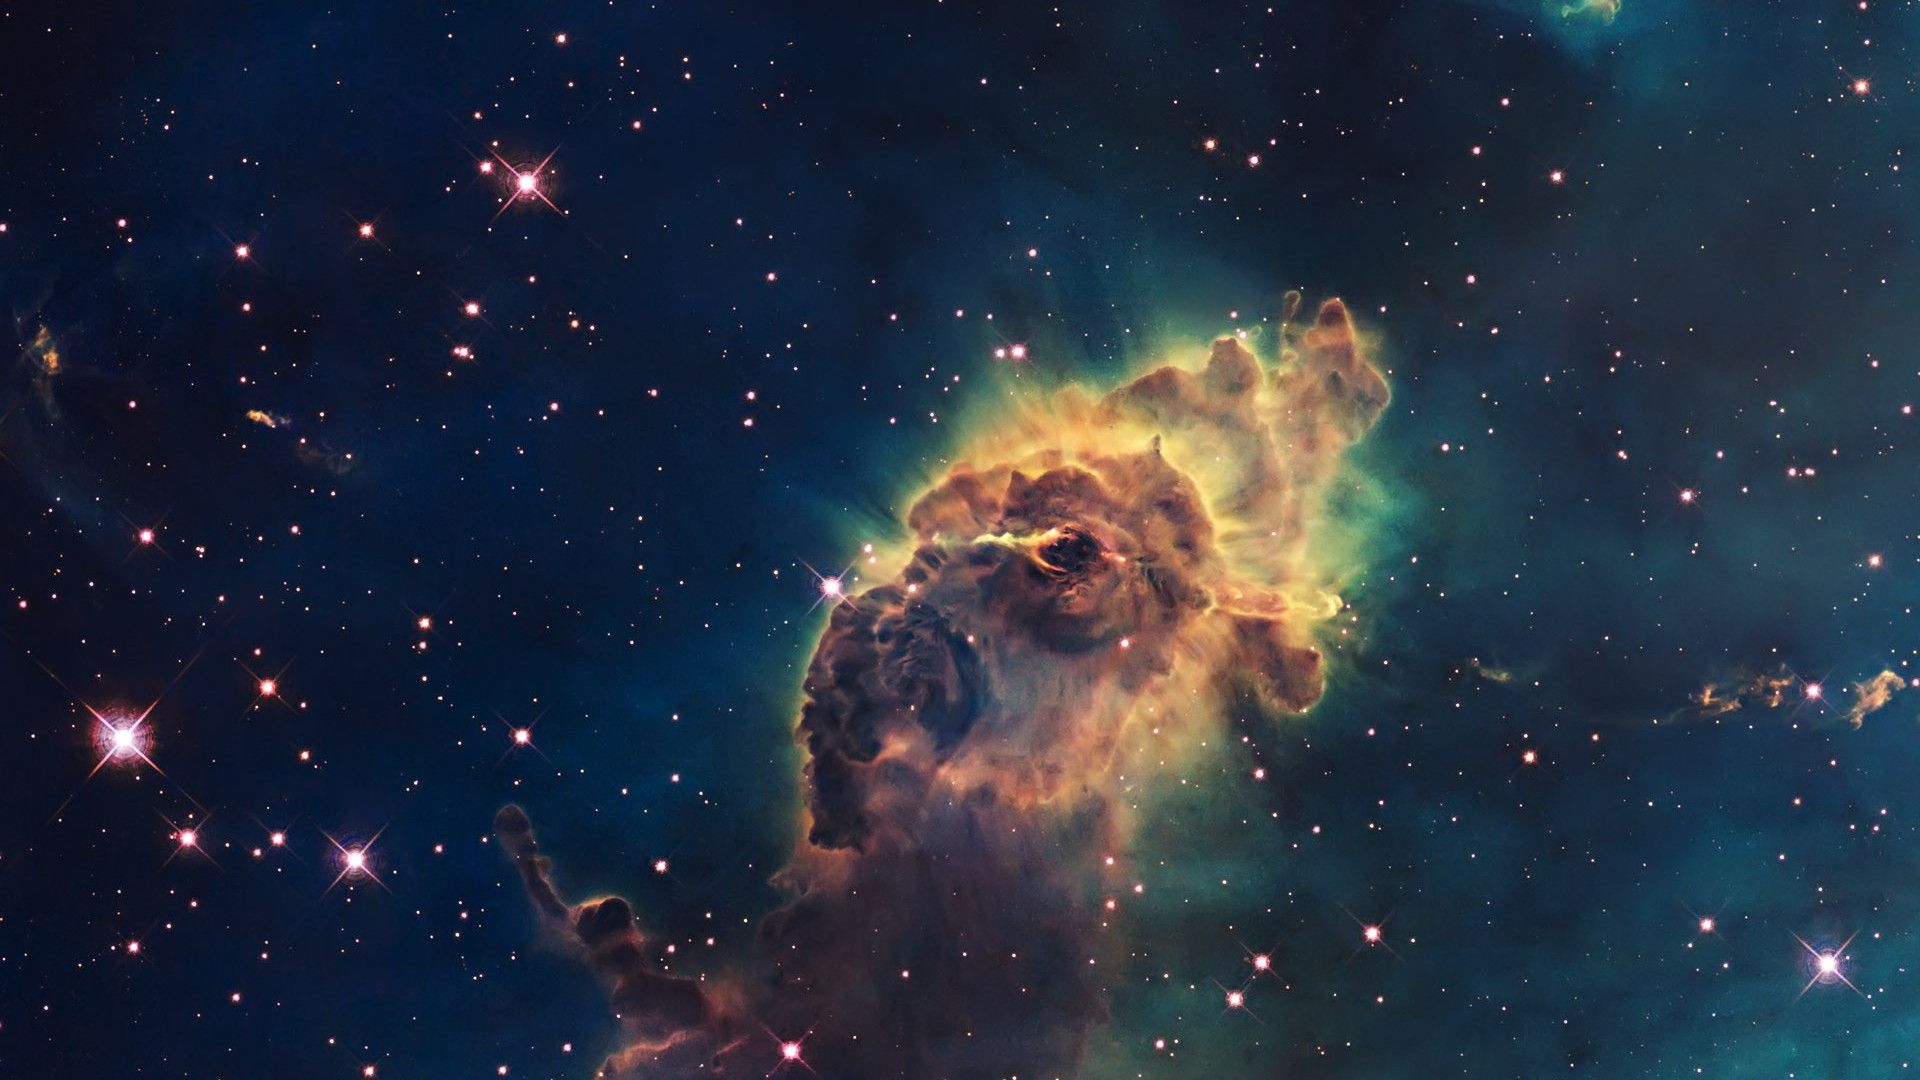 Eagle Nebula HD Wallpapers For Pc Amazing Wallpaperz